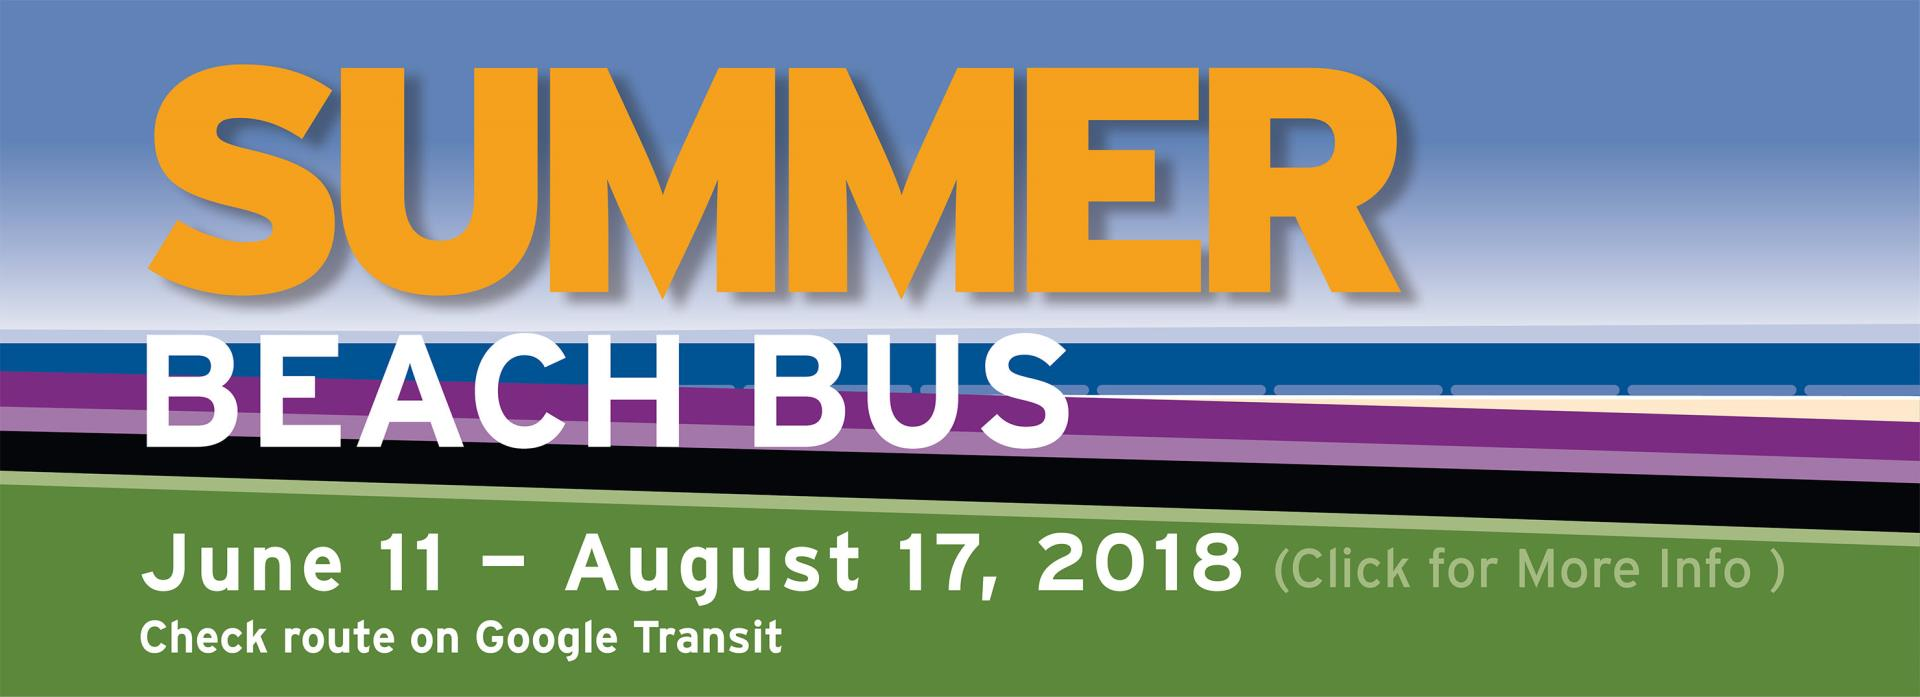 Thousand Oaks Transit Summer Beach Bus Banner Image for Document